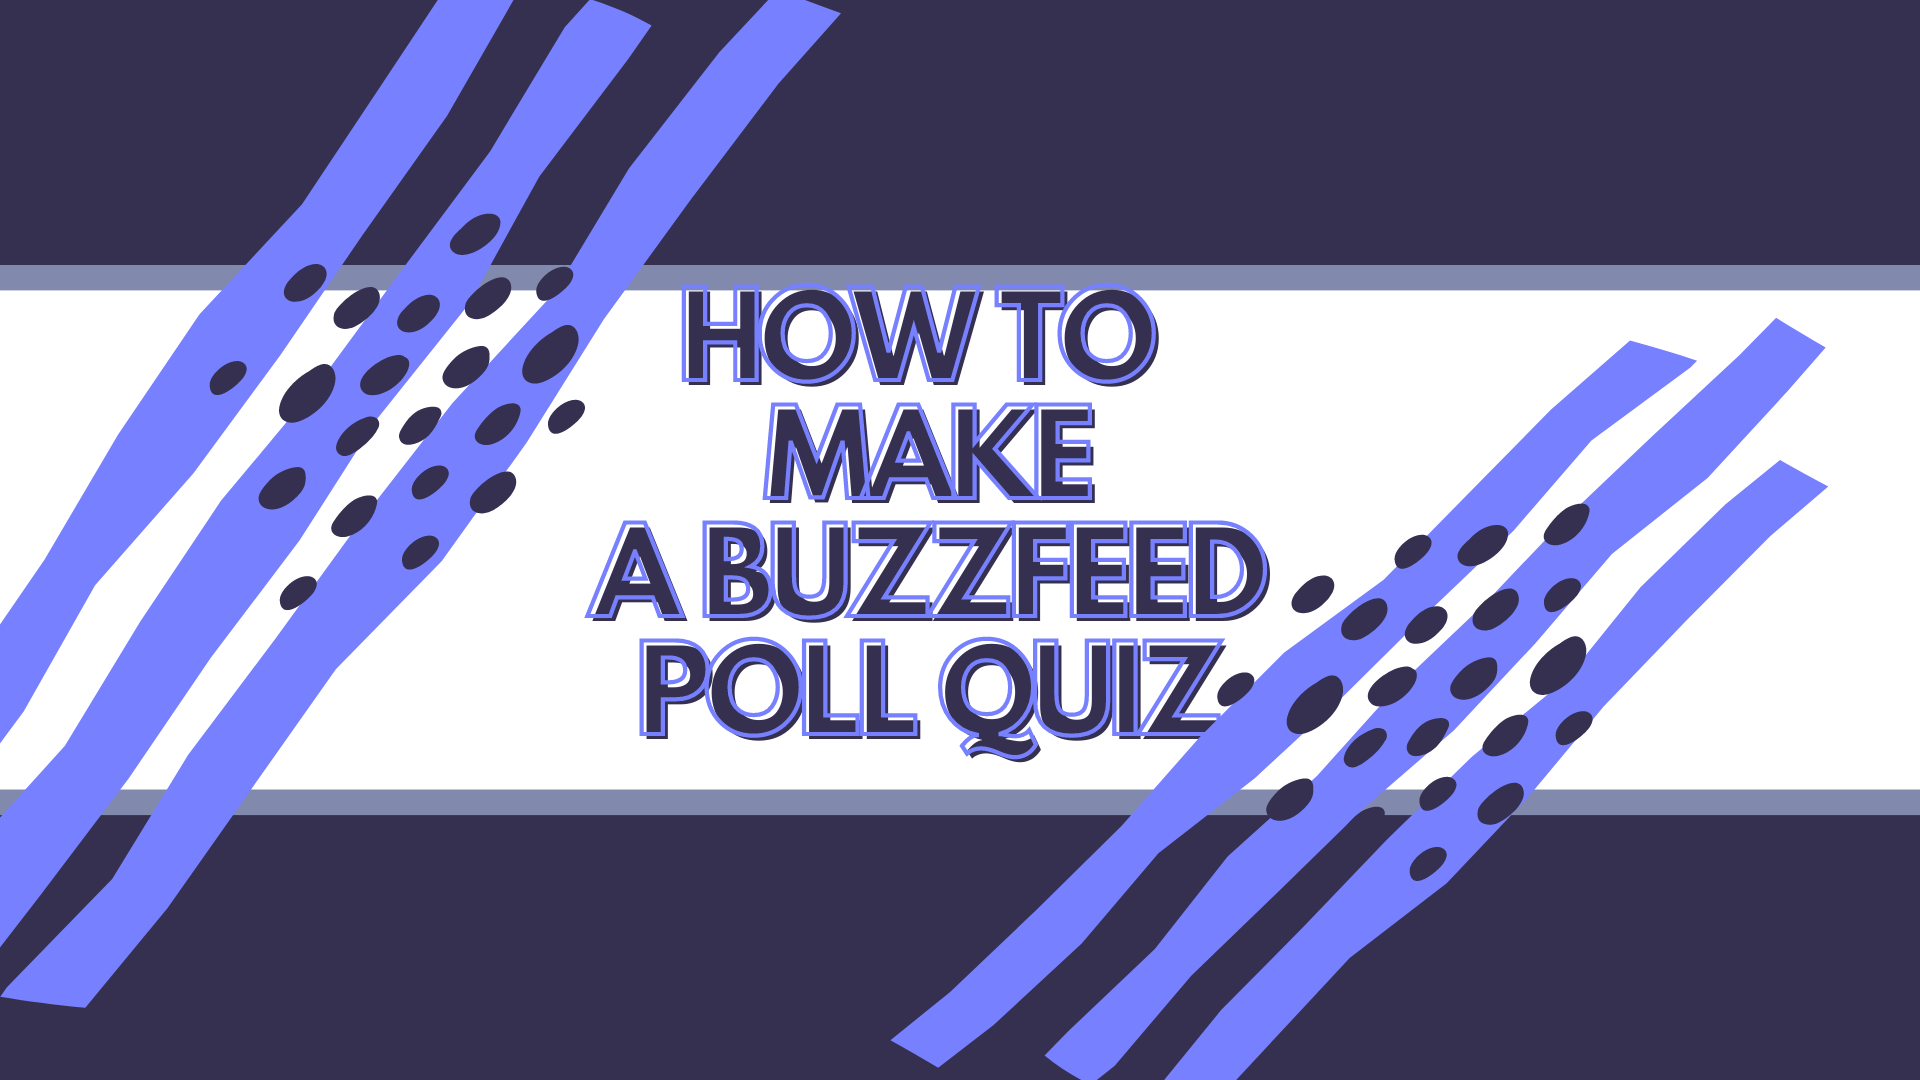 how to make a buzzfeed poll quiz